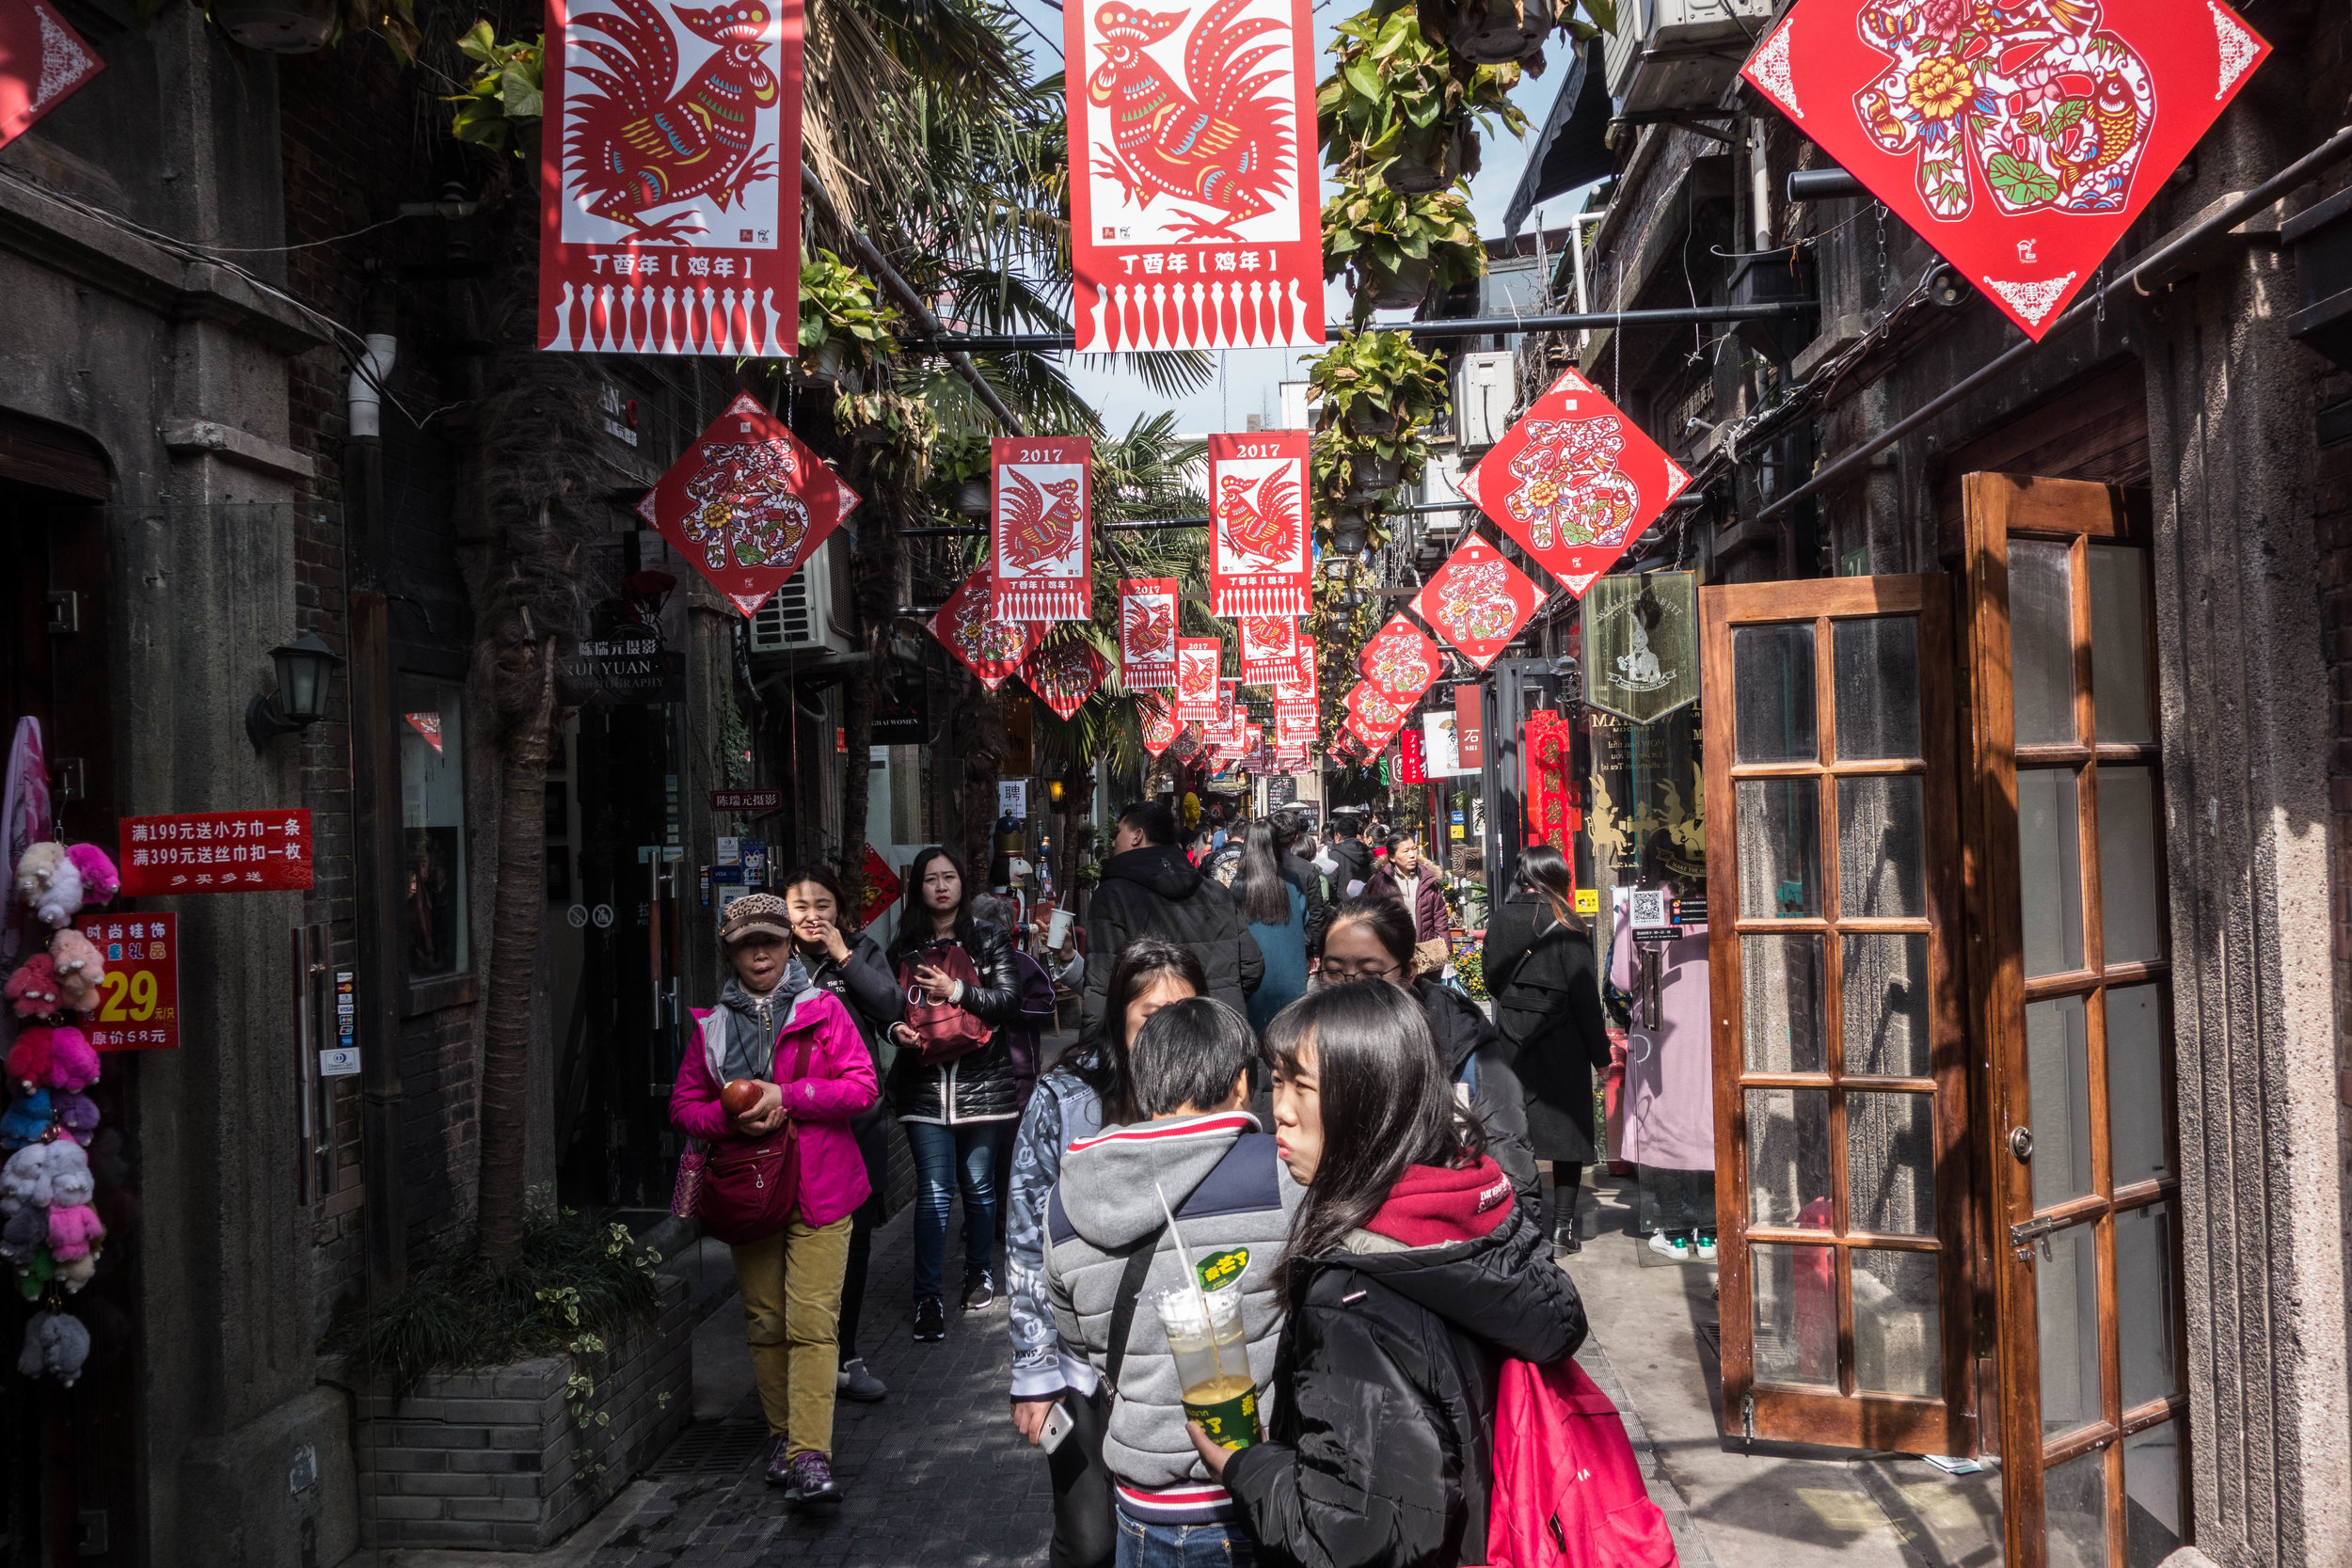 Tianzifang, a popular arts and crafts shopping area from a remodeled Shikumen